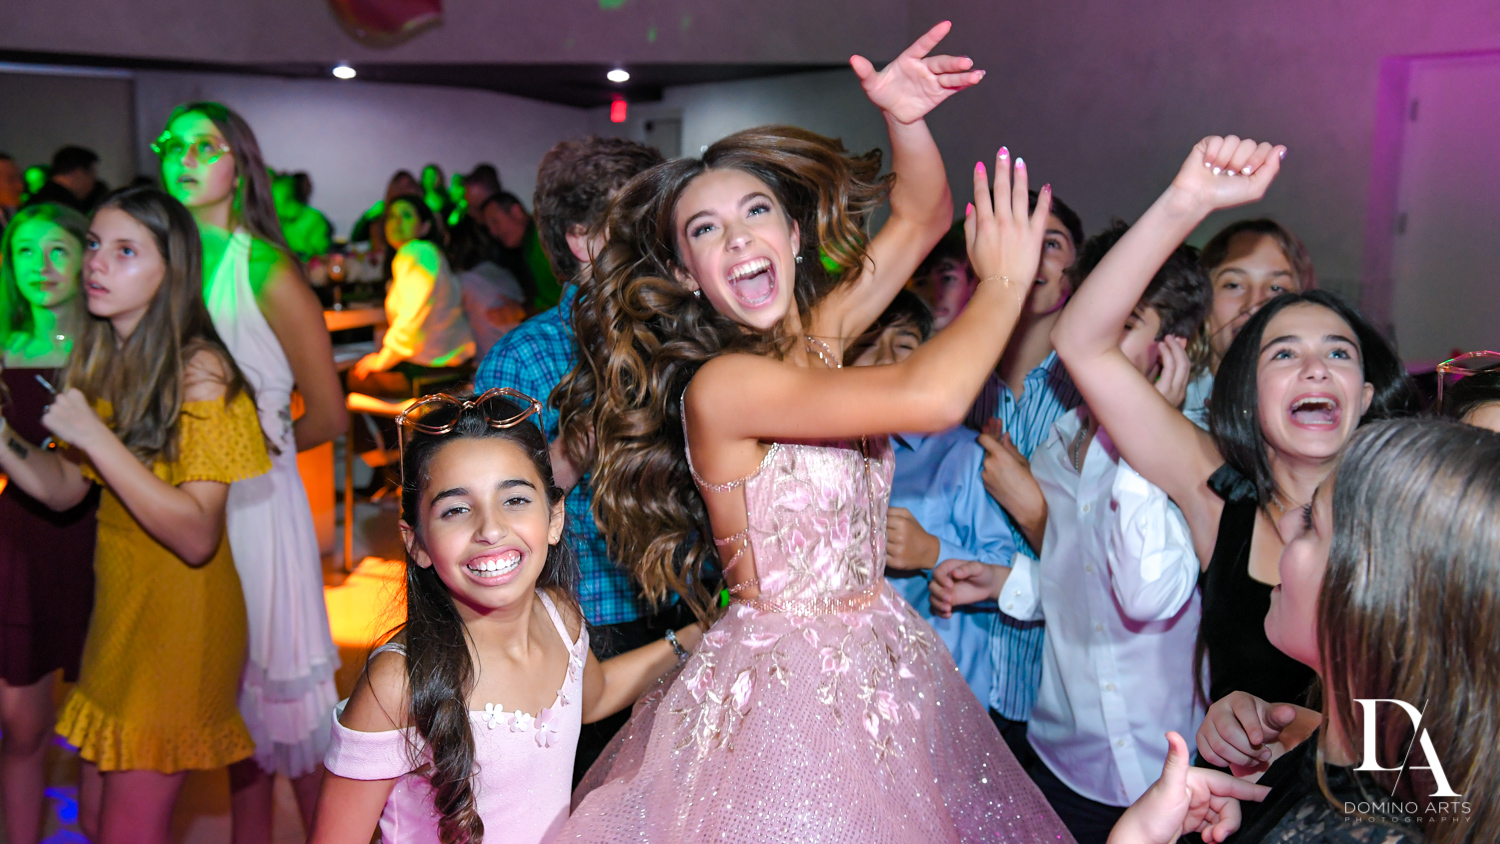 dancing at Pink XO Bat Mitzvah at The Venue Crystal Ballroom by Domino Arts Photography